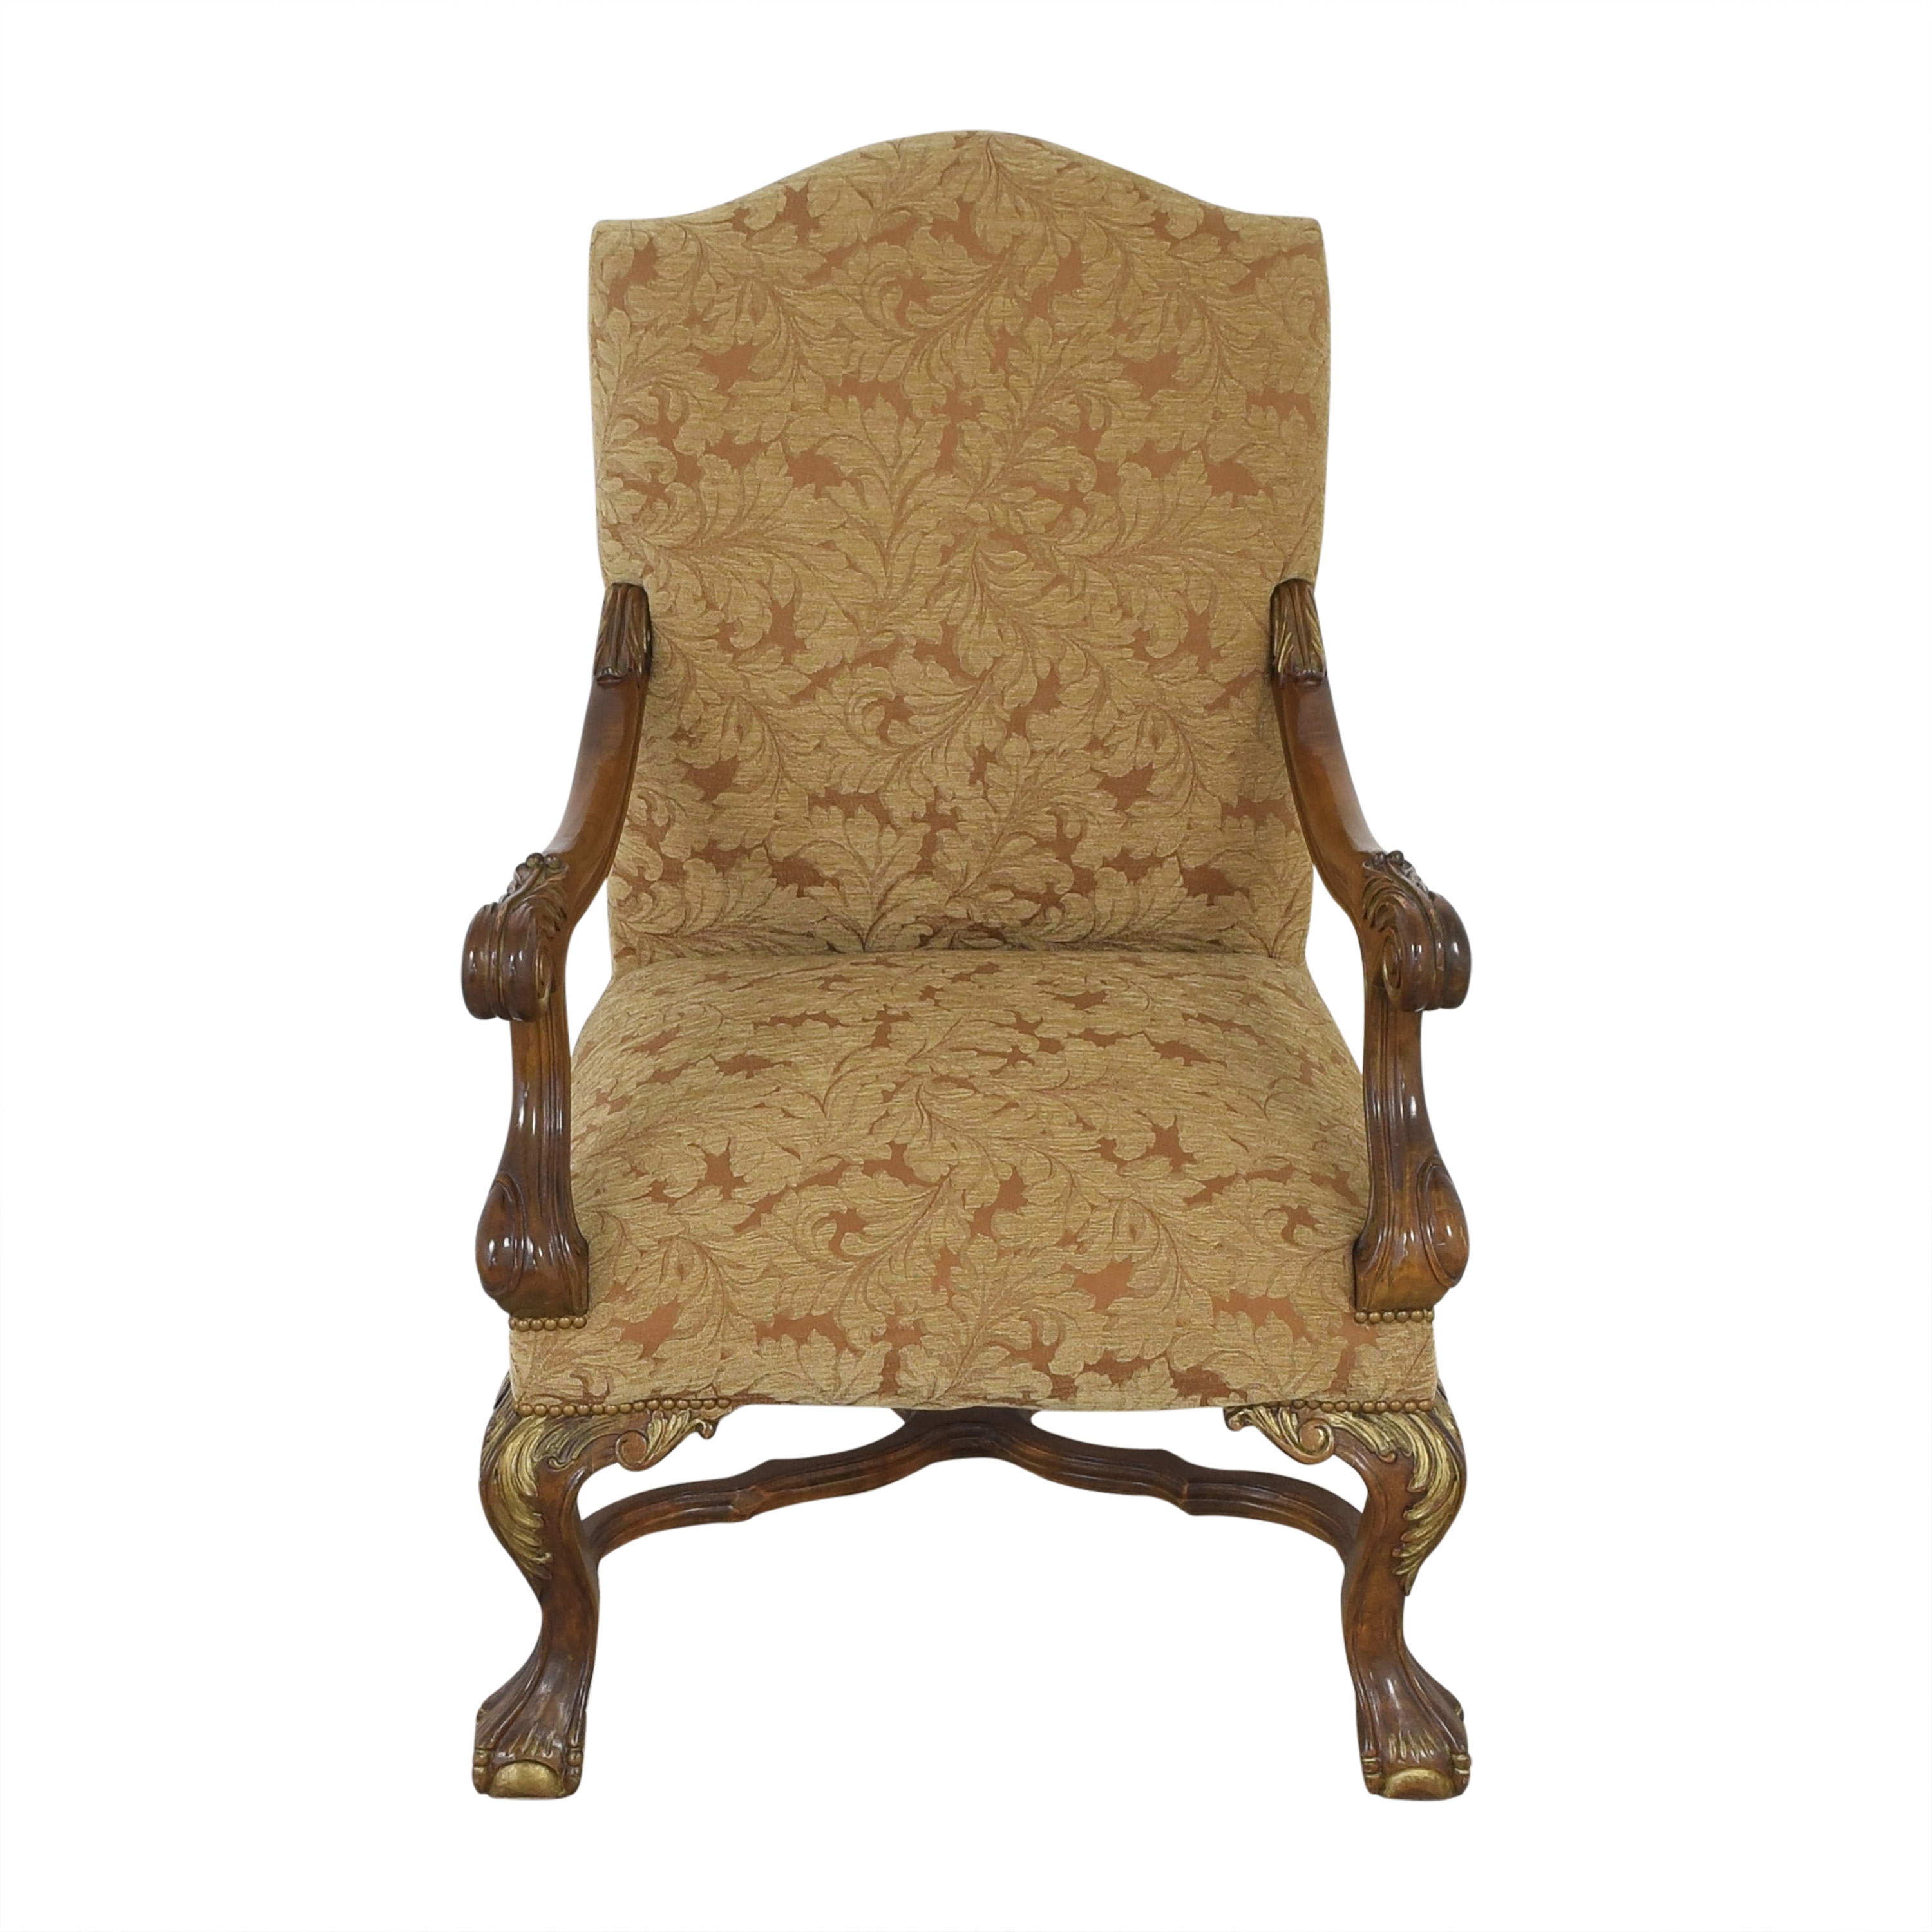 Vintage Upholsted Armchair Accent Chairs